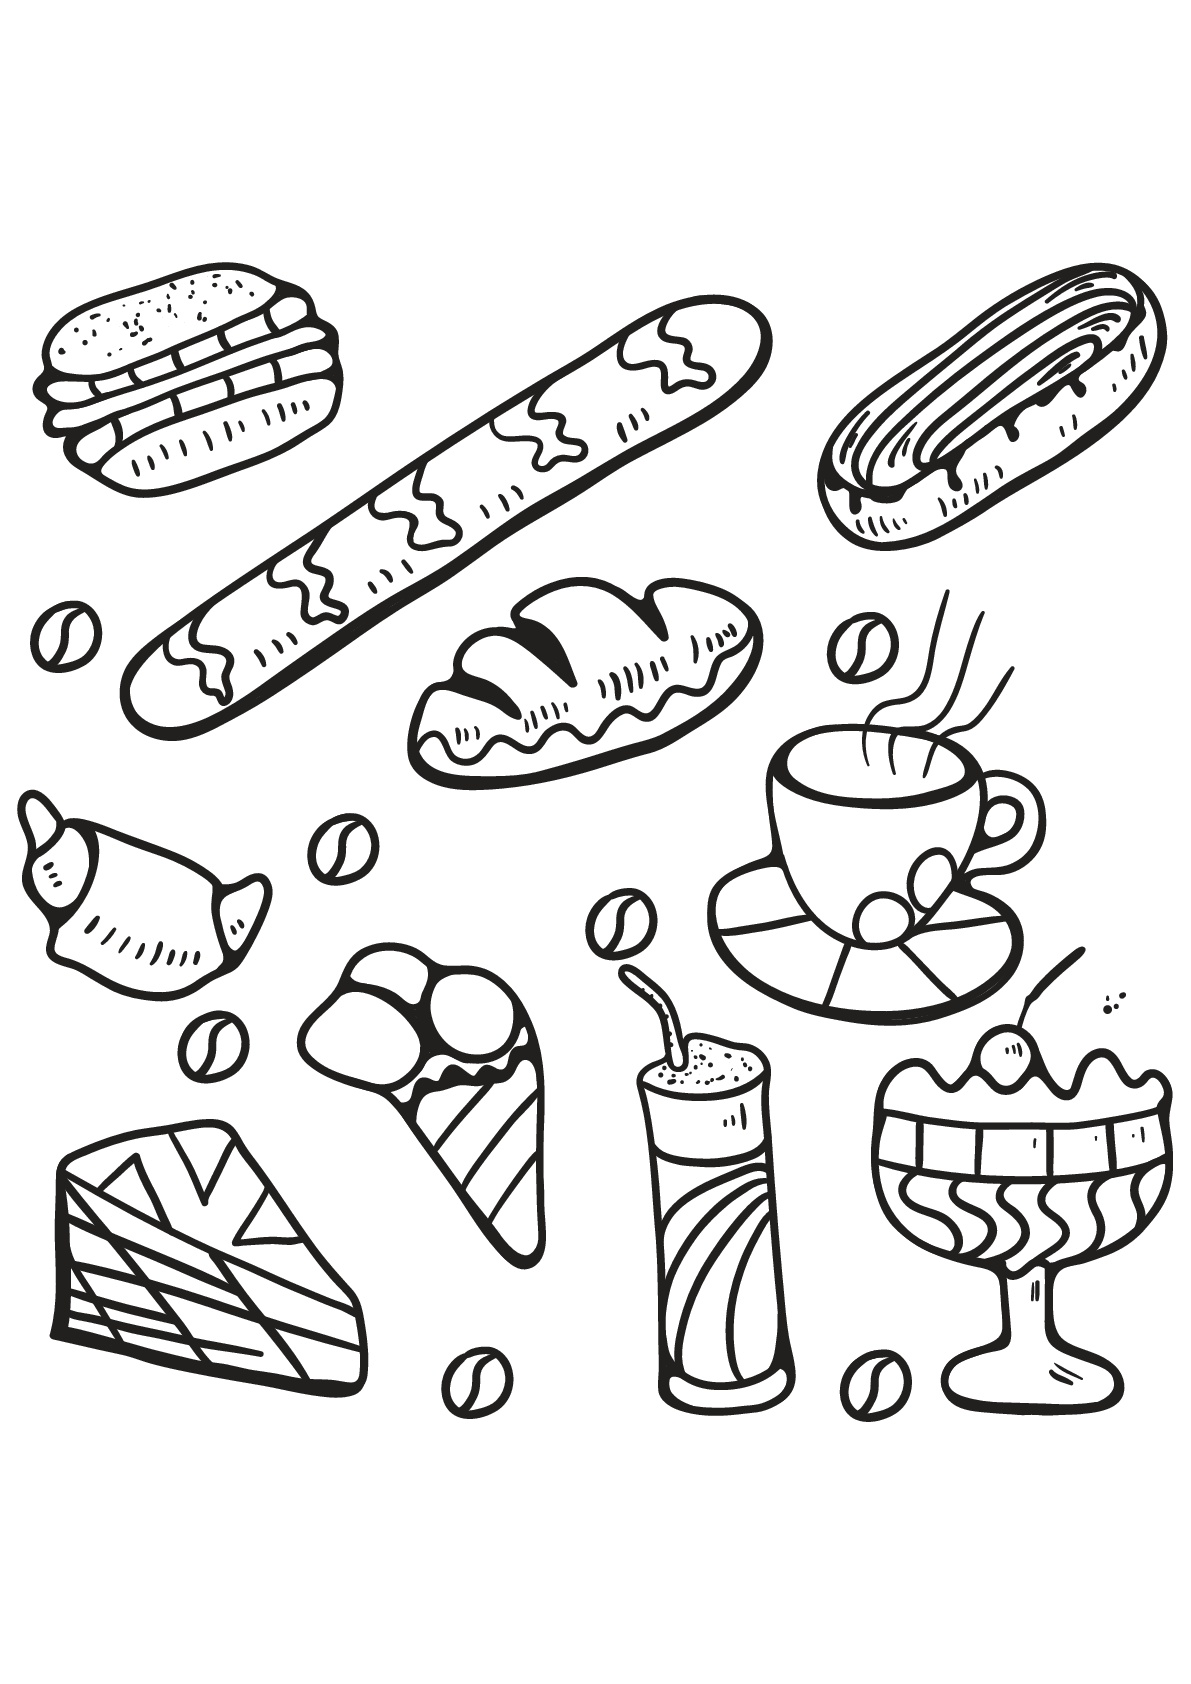 cakes coloring pages Cupcakes and cakes to print for free   Cupcakes And Cakes Kids  cakes coloring pages